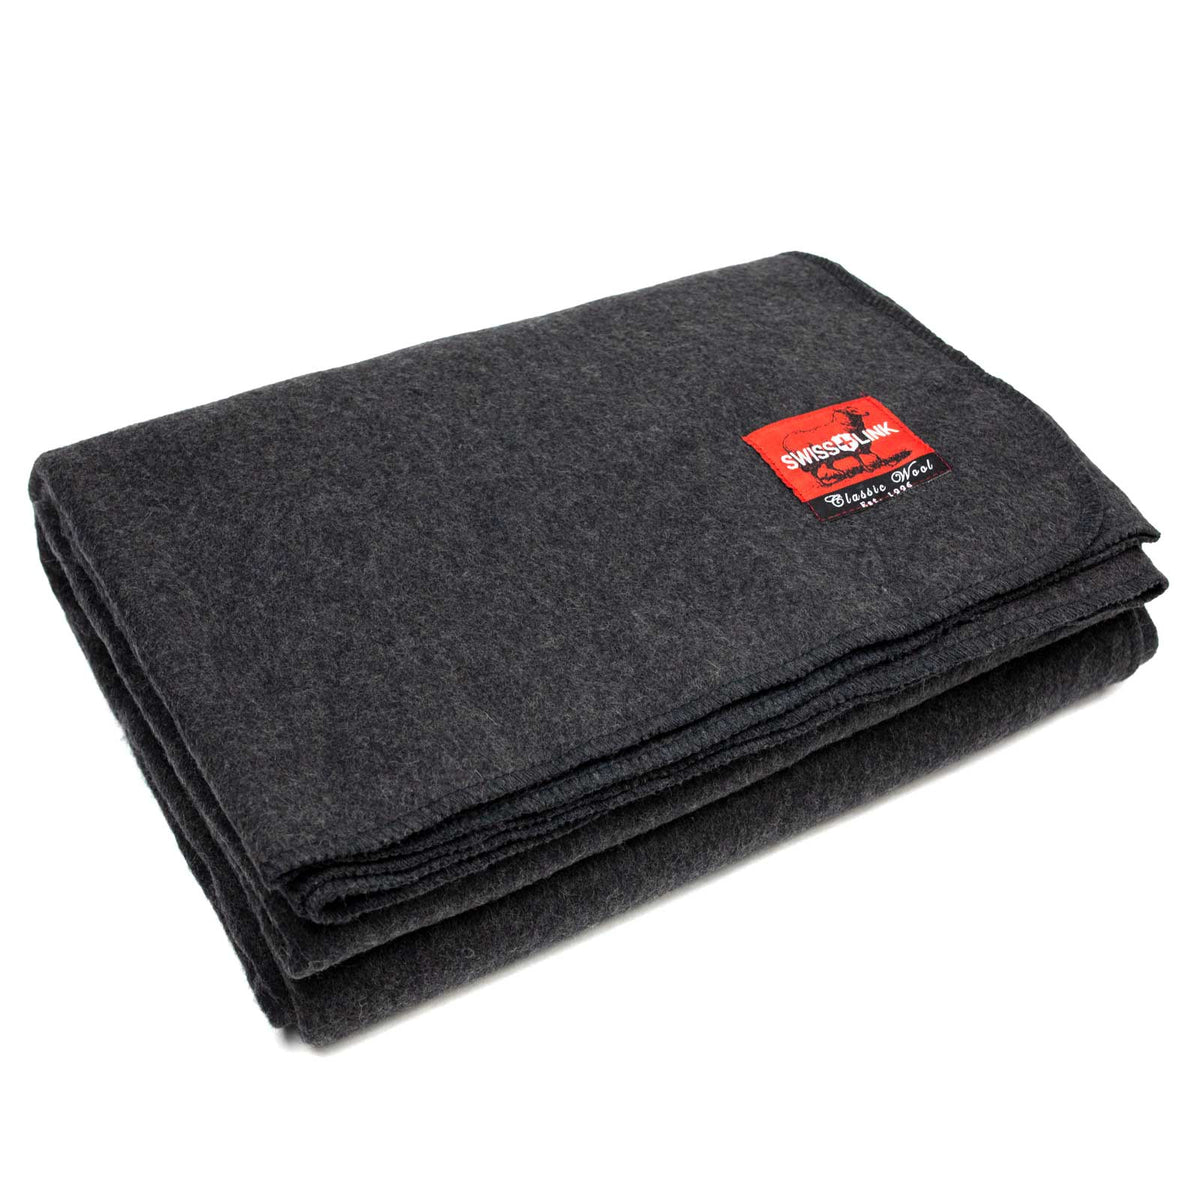 Charcoal Grey Classic Wool Blanket Swiss Link Military